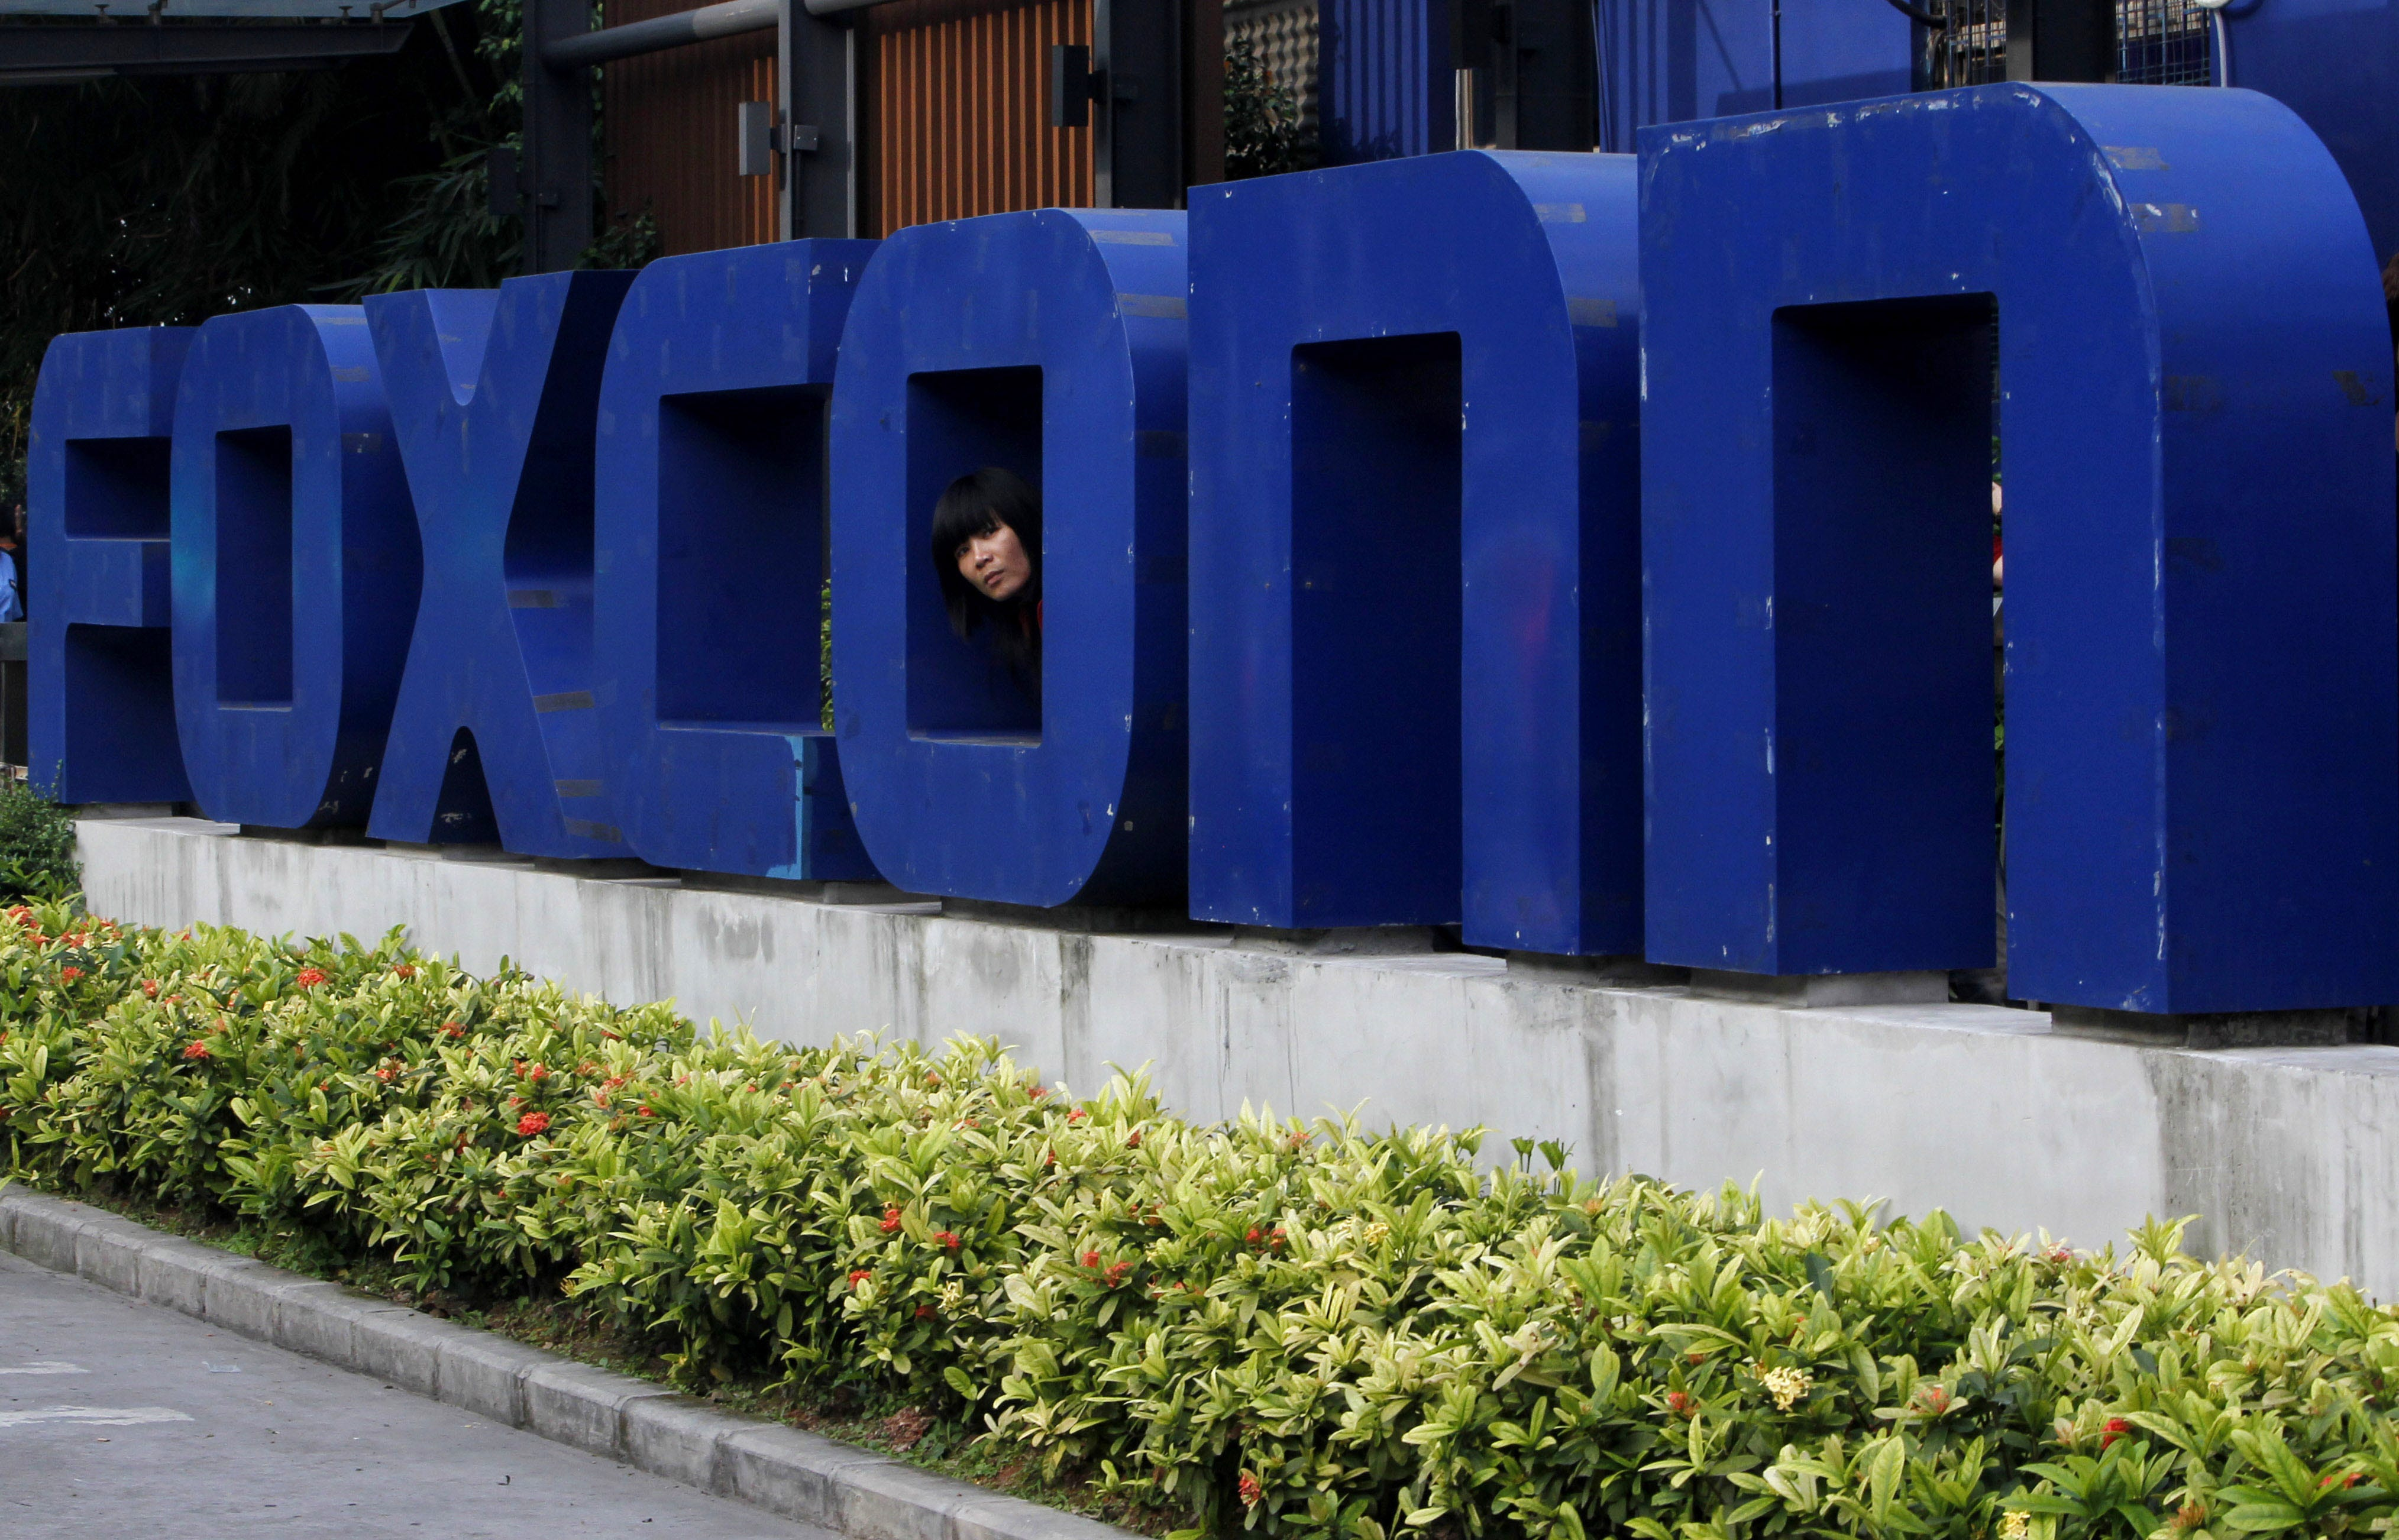 Report: Foxconn could return nearly $4 for every $1 in state subsidy